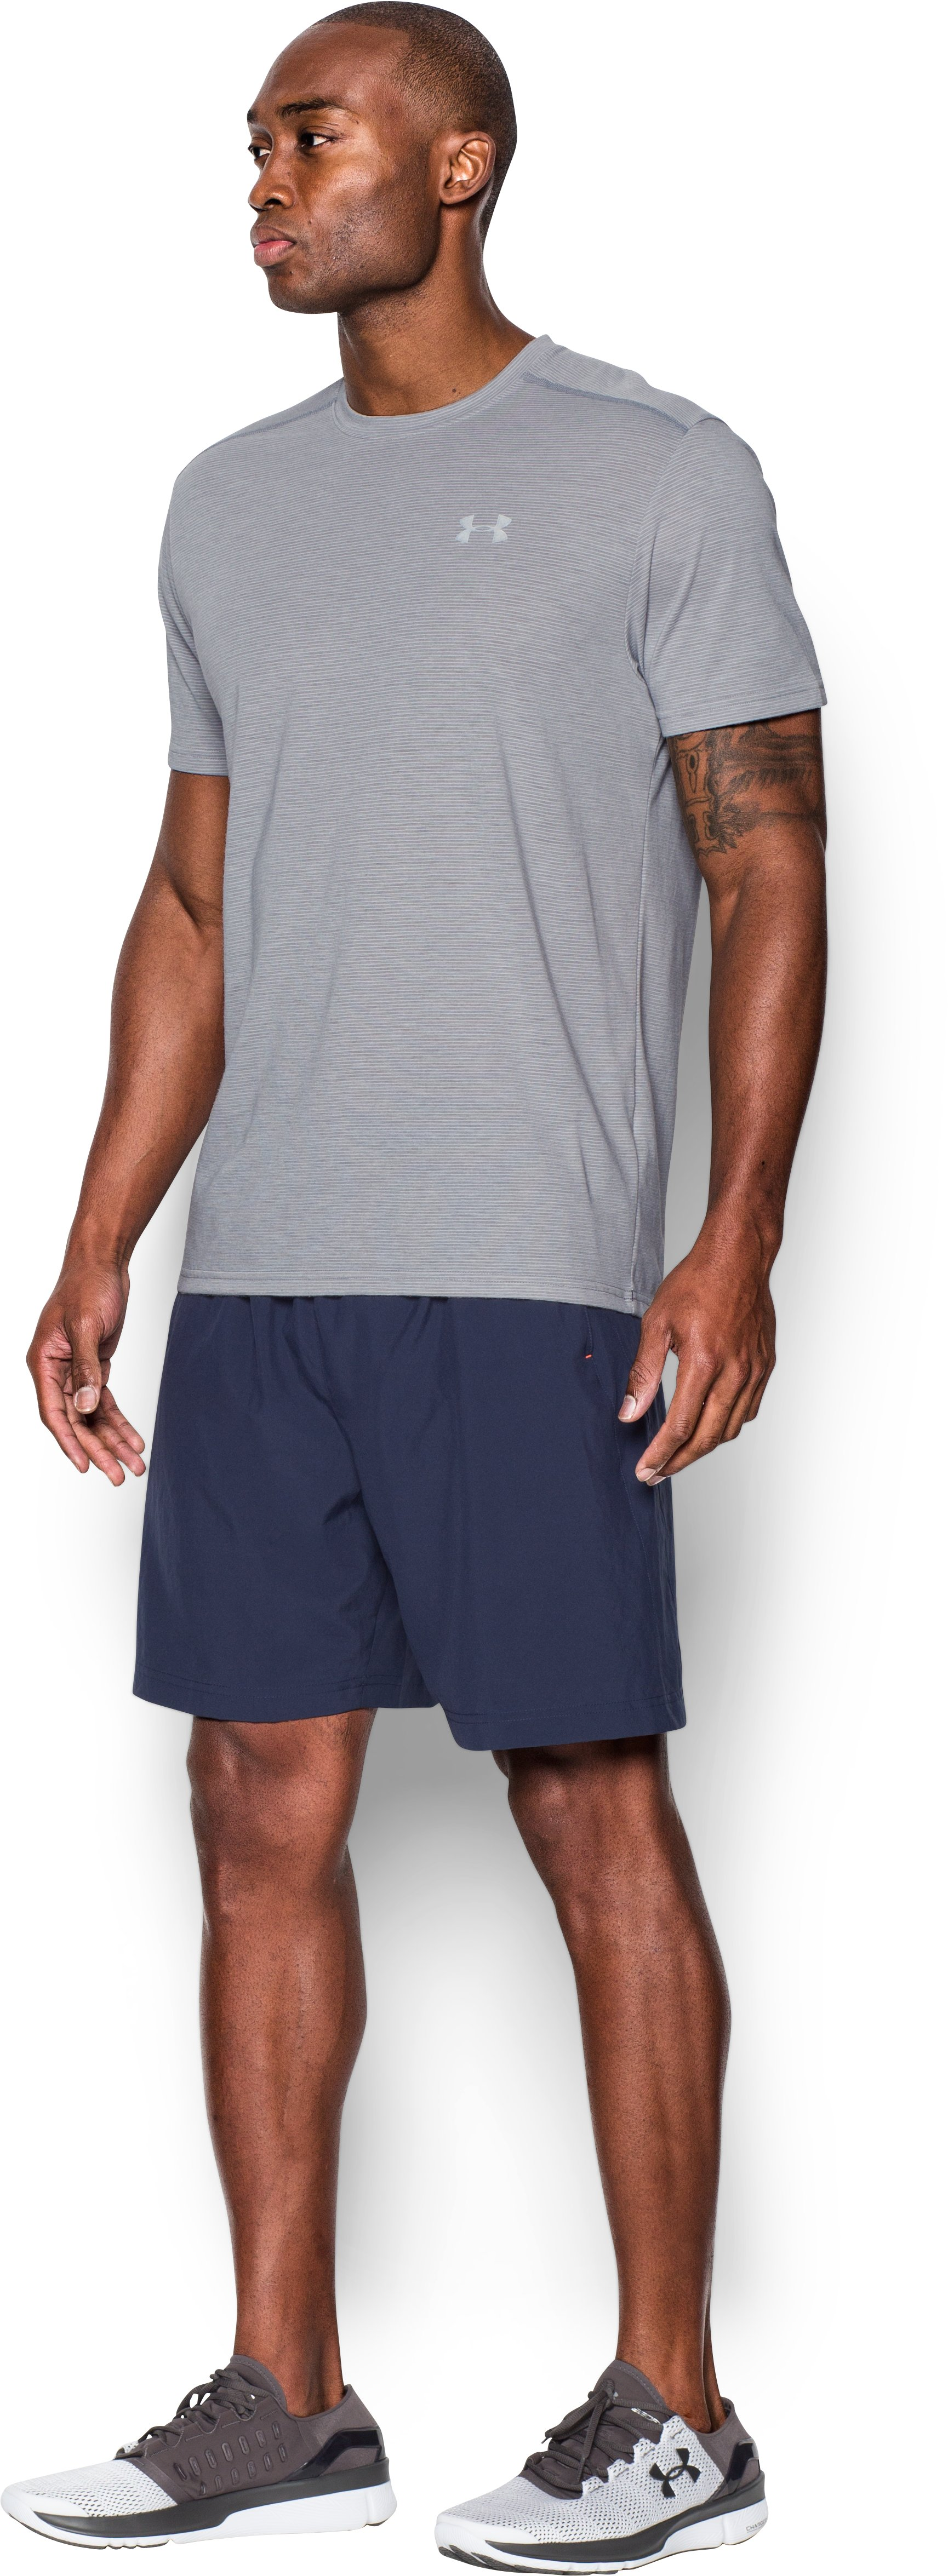 Men's UA Streaker Run Short Sleeve T-Shirt, True Gray Heather